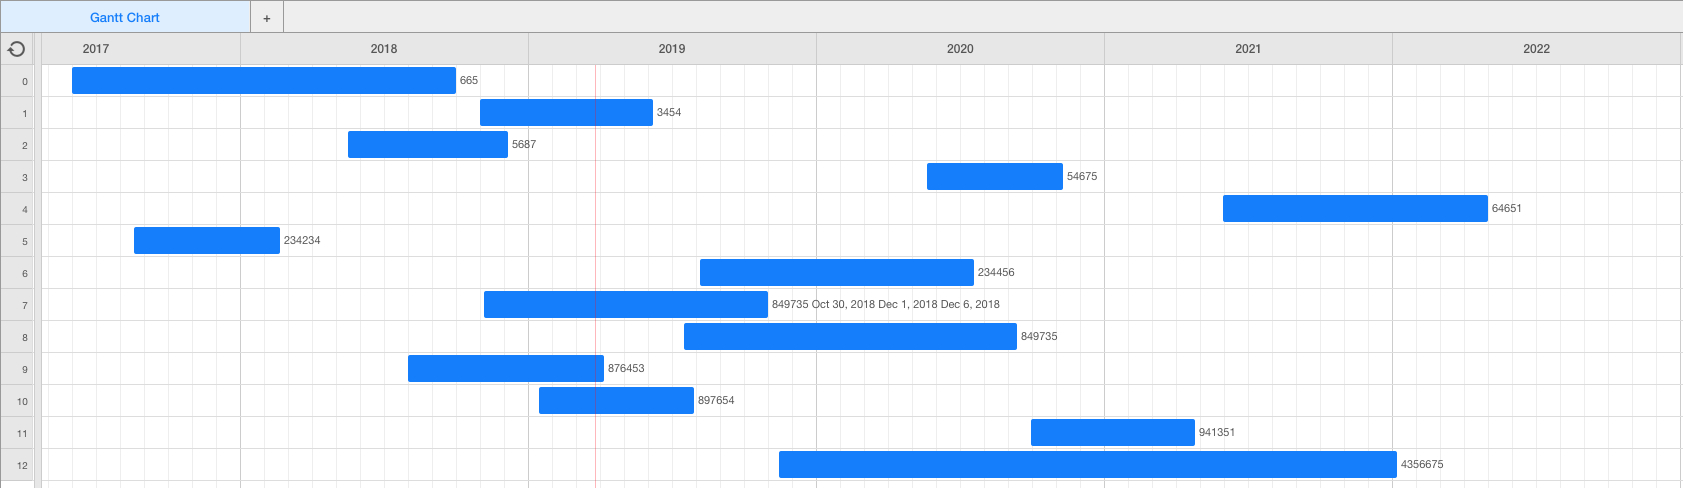 Gantt - Ninox Users Manualnioxus - 1.0 within Gant Chart Calendar Year In Weeks For 2020